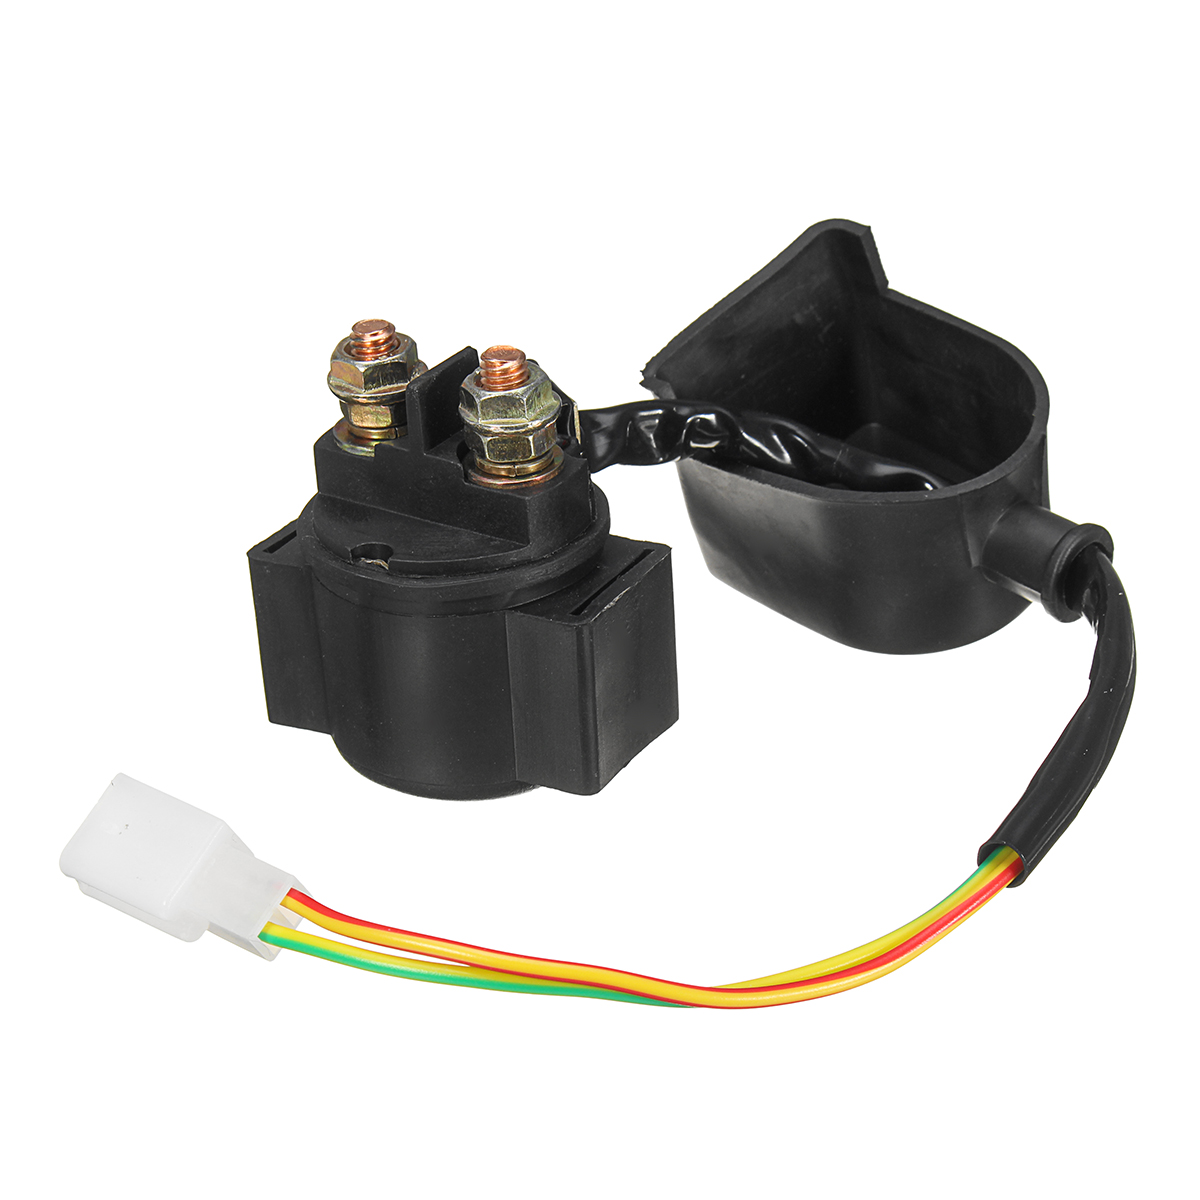 Forceful 12v Starter Solenoid Relay For Atv Go Kart Pit Dirt Bike Quad 90cc 110cc 125cc Skilful Manufacture Atv,rv,boat & Other Vehicle